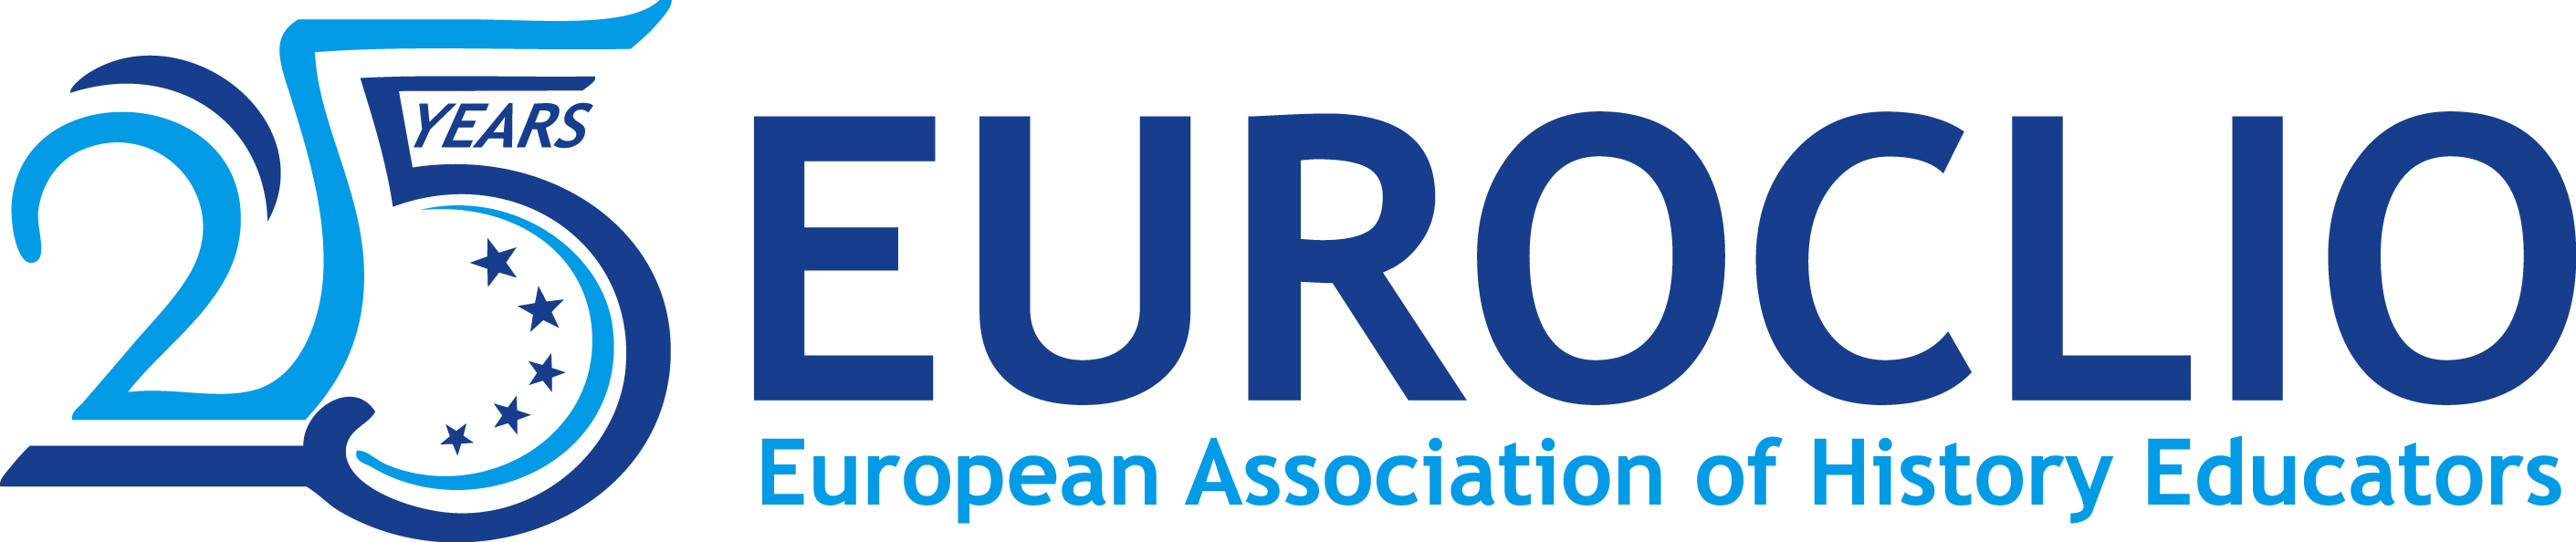 Resultado de imagen de 25 Years Euroclio (European Association of Historia Educators)